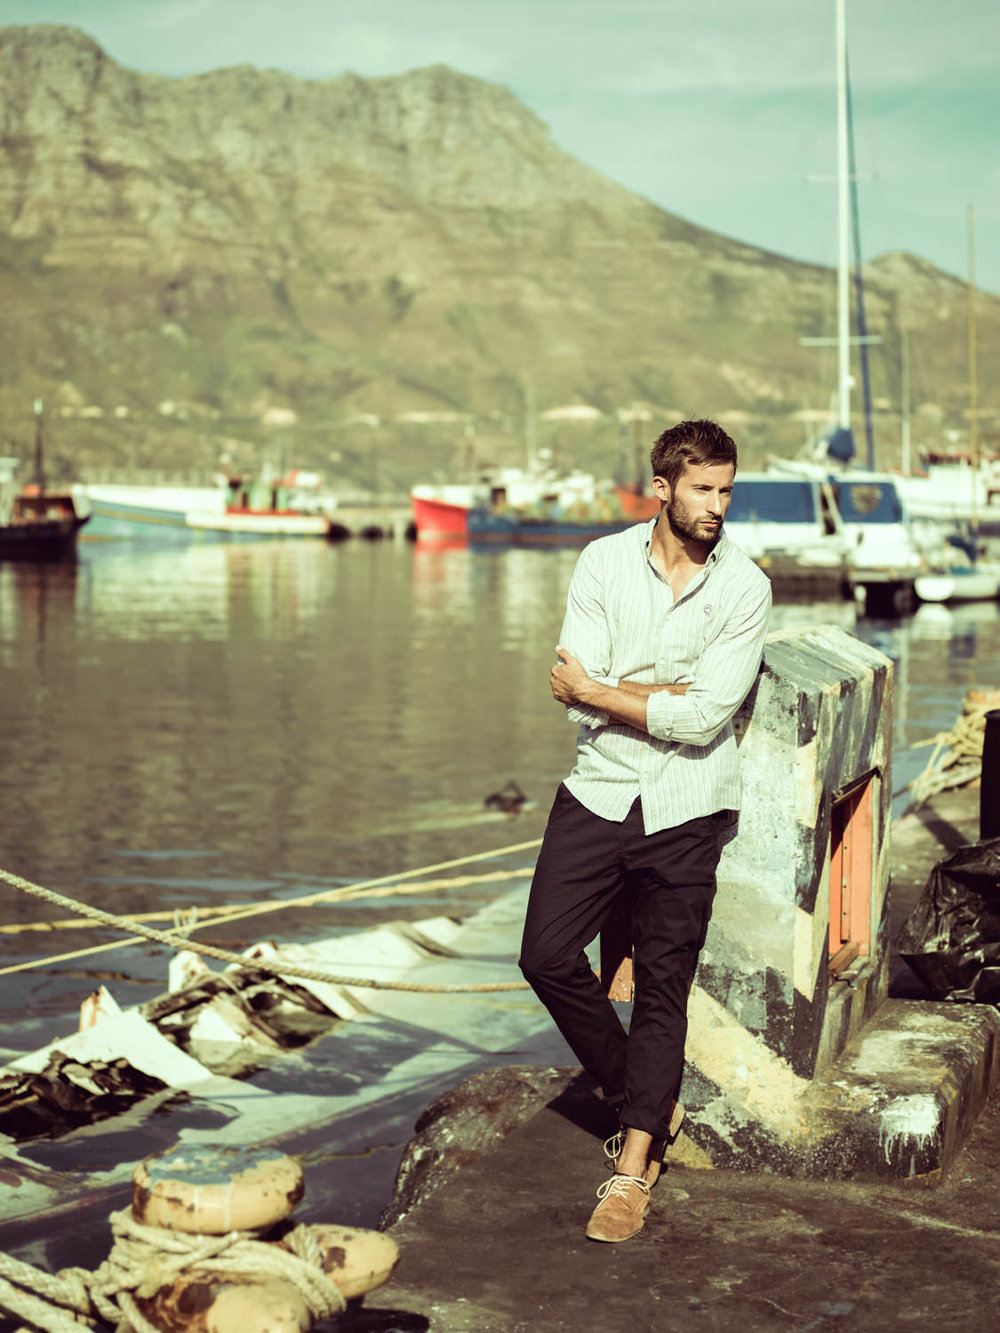 tim gerges the harbour - toby Cape Town Fashion photographer-4572944.jpg